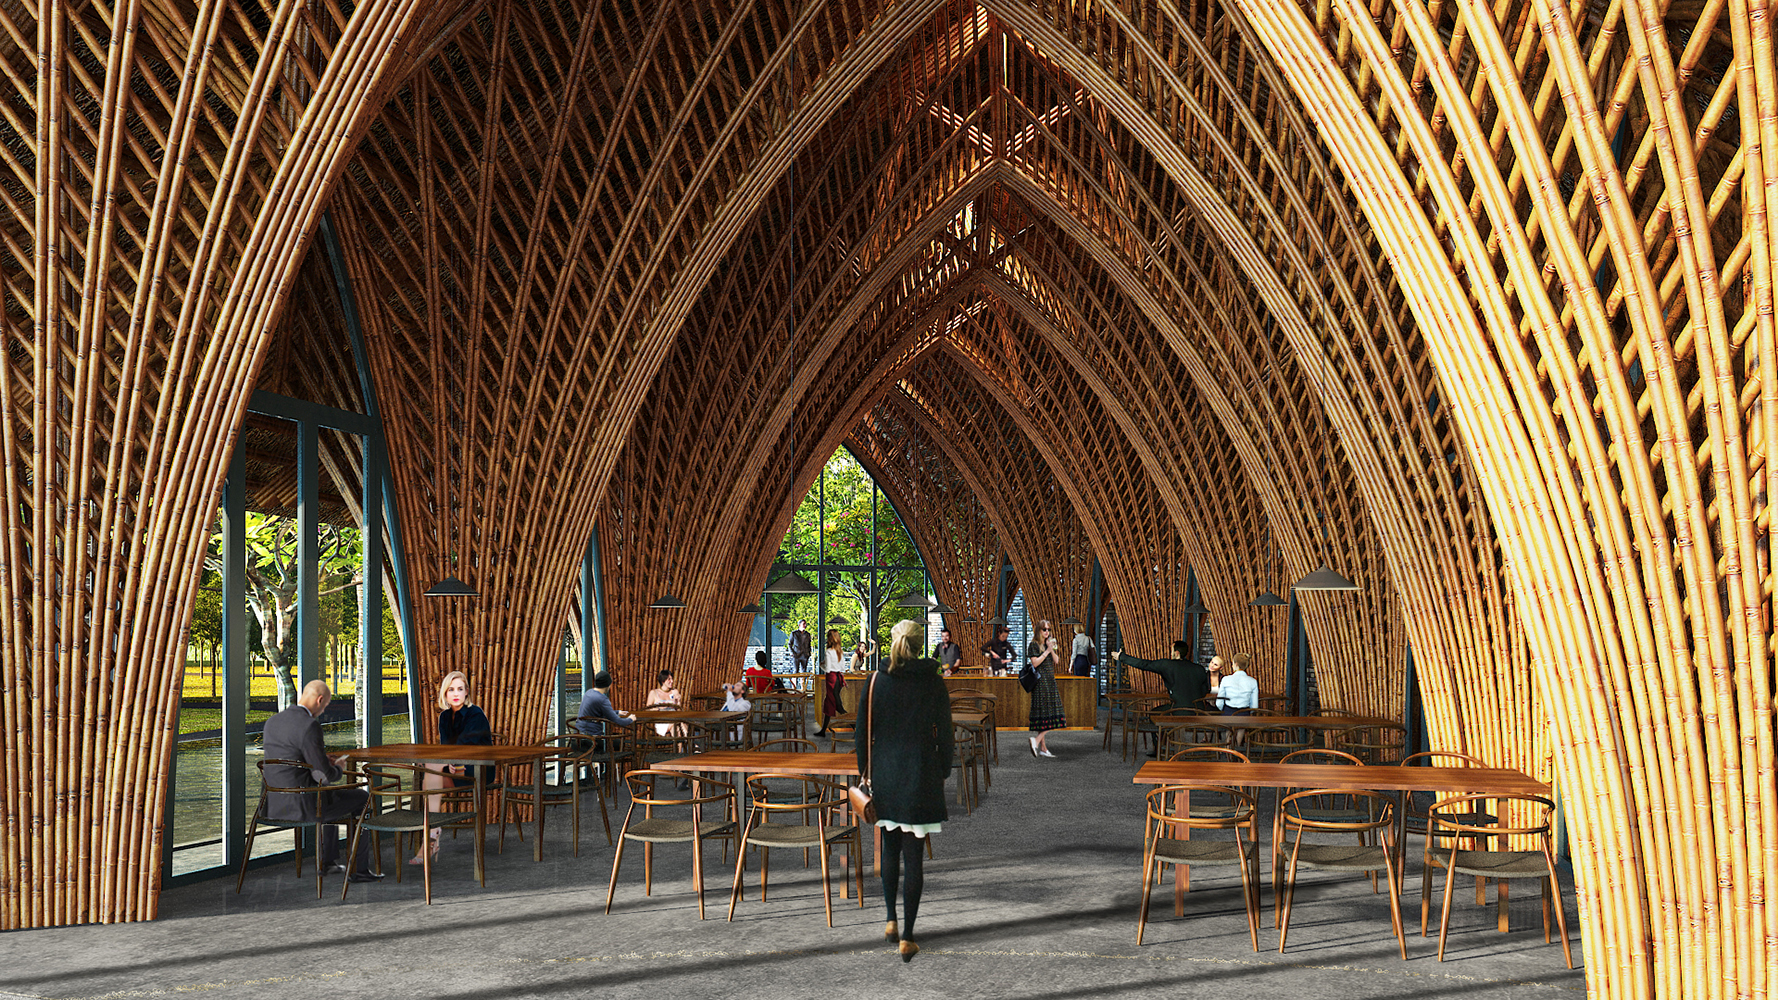 Gallery of vtn architects creates airtight bamboo pavilion - Bamboo designs for interior designing ...